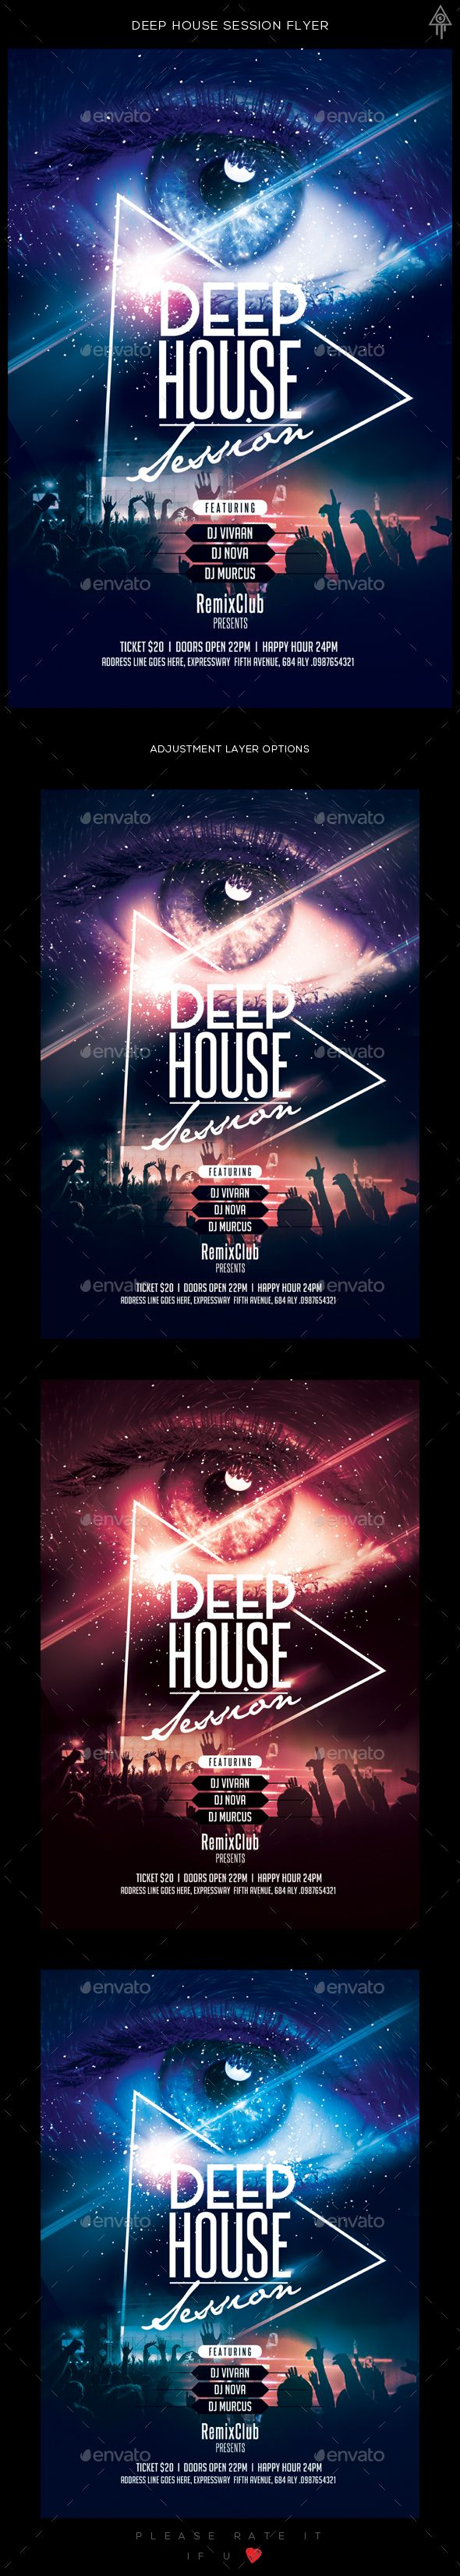 Deep House Session Flyer Template PSD. Download here: https://graphicriver.net/item/deep-house-session-flyer/17180936?ref=ksioks